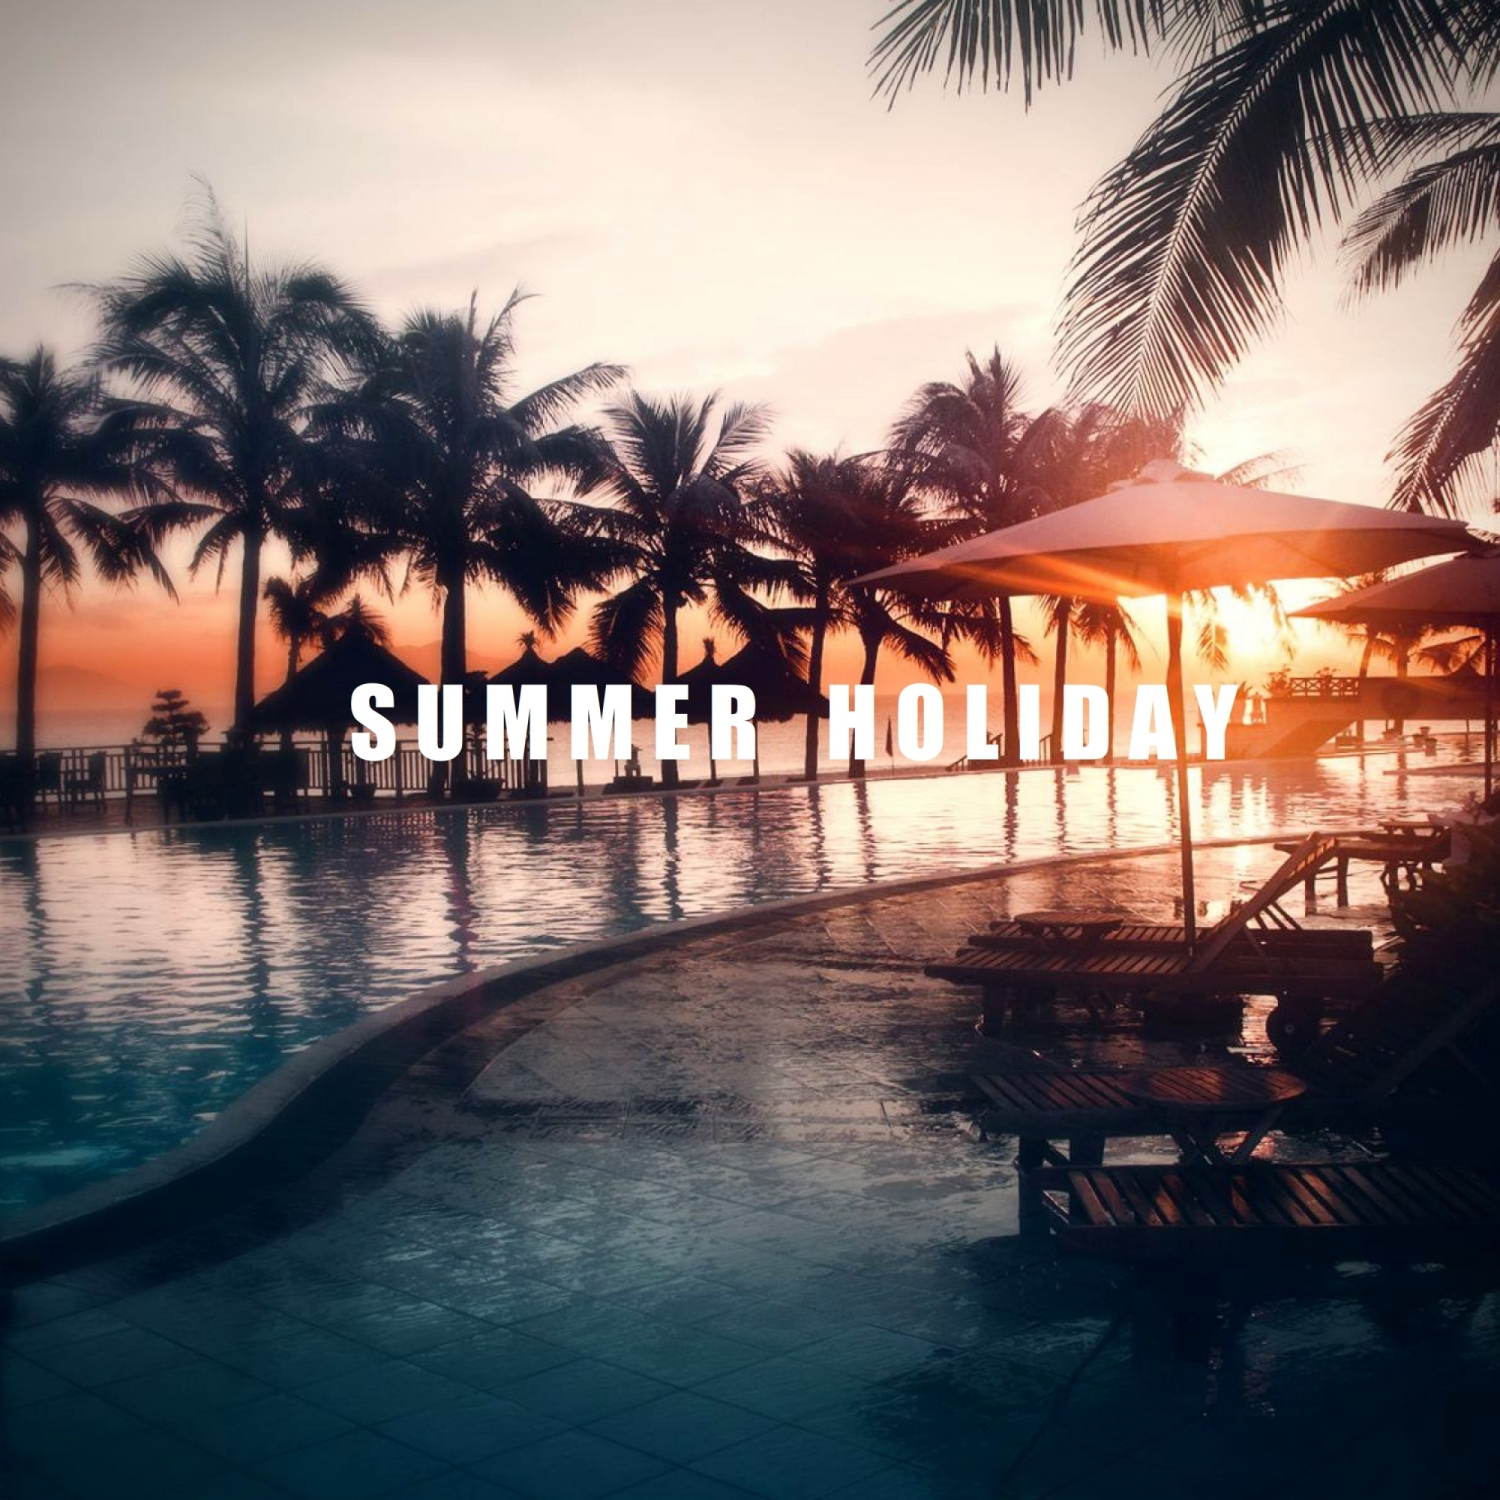 Hypebeast & Kelly Holiday - Tropical Paradise (feat. Kelly Holiday) (Tropical House edit)